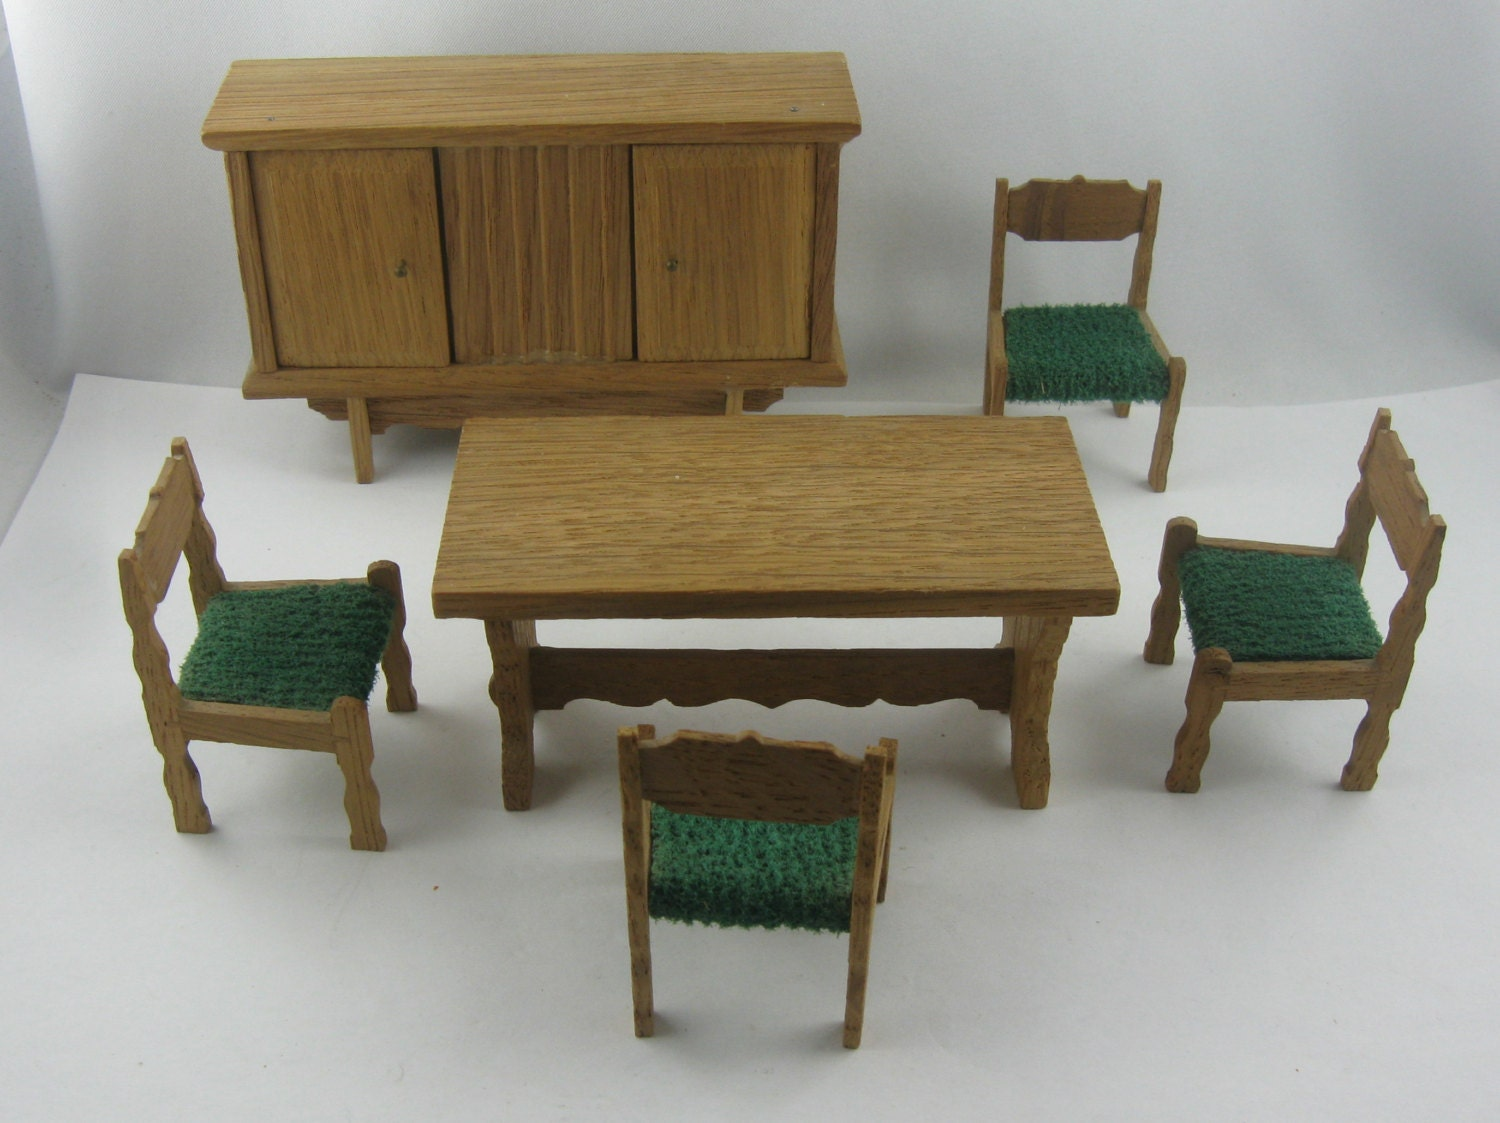 10 off 70s dollhouse furniture dining room rustic style for 70s wooden couch